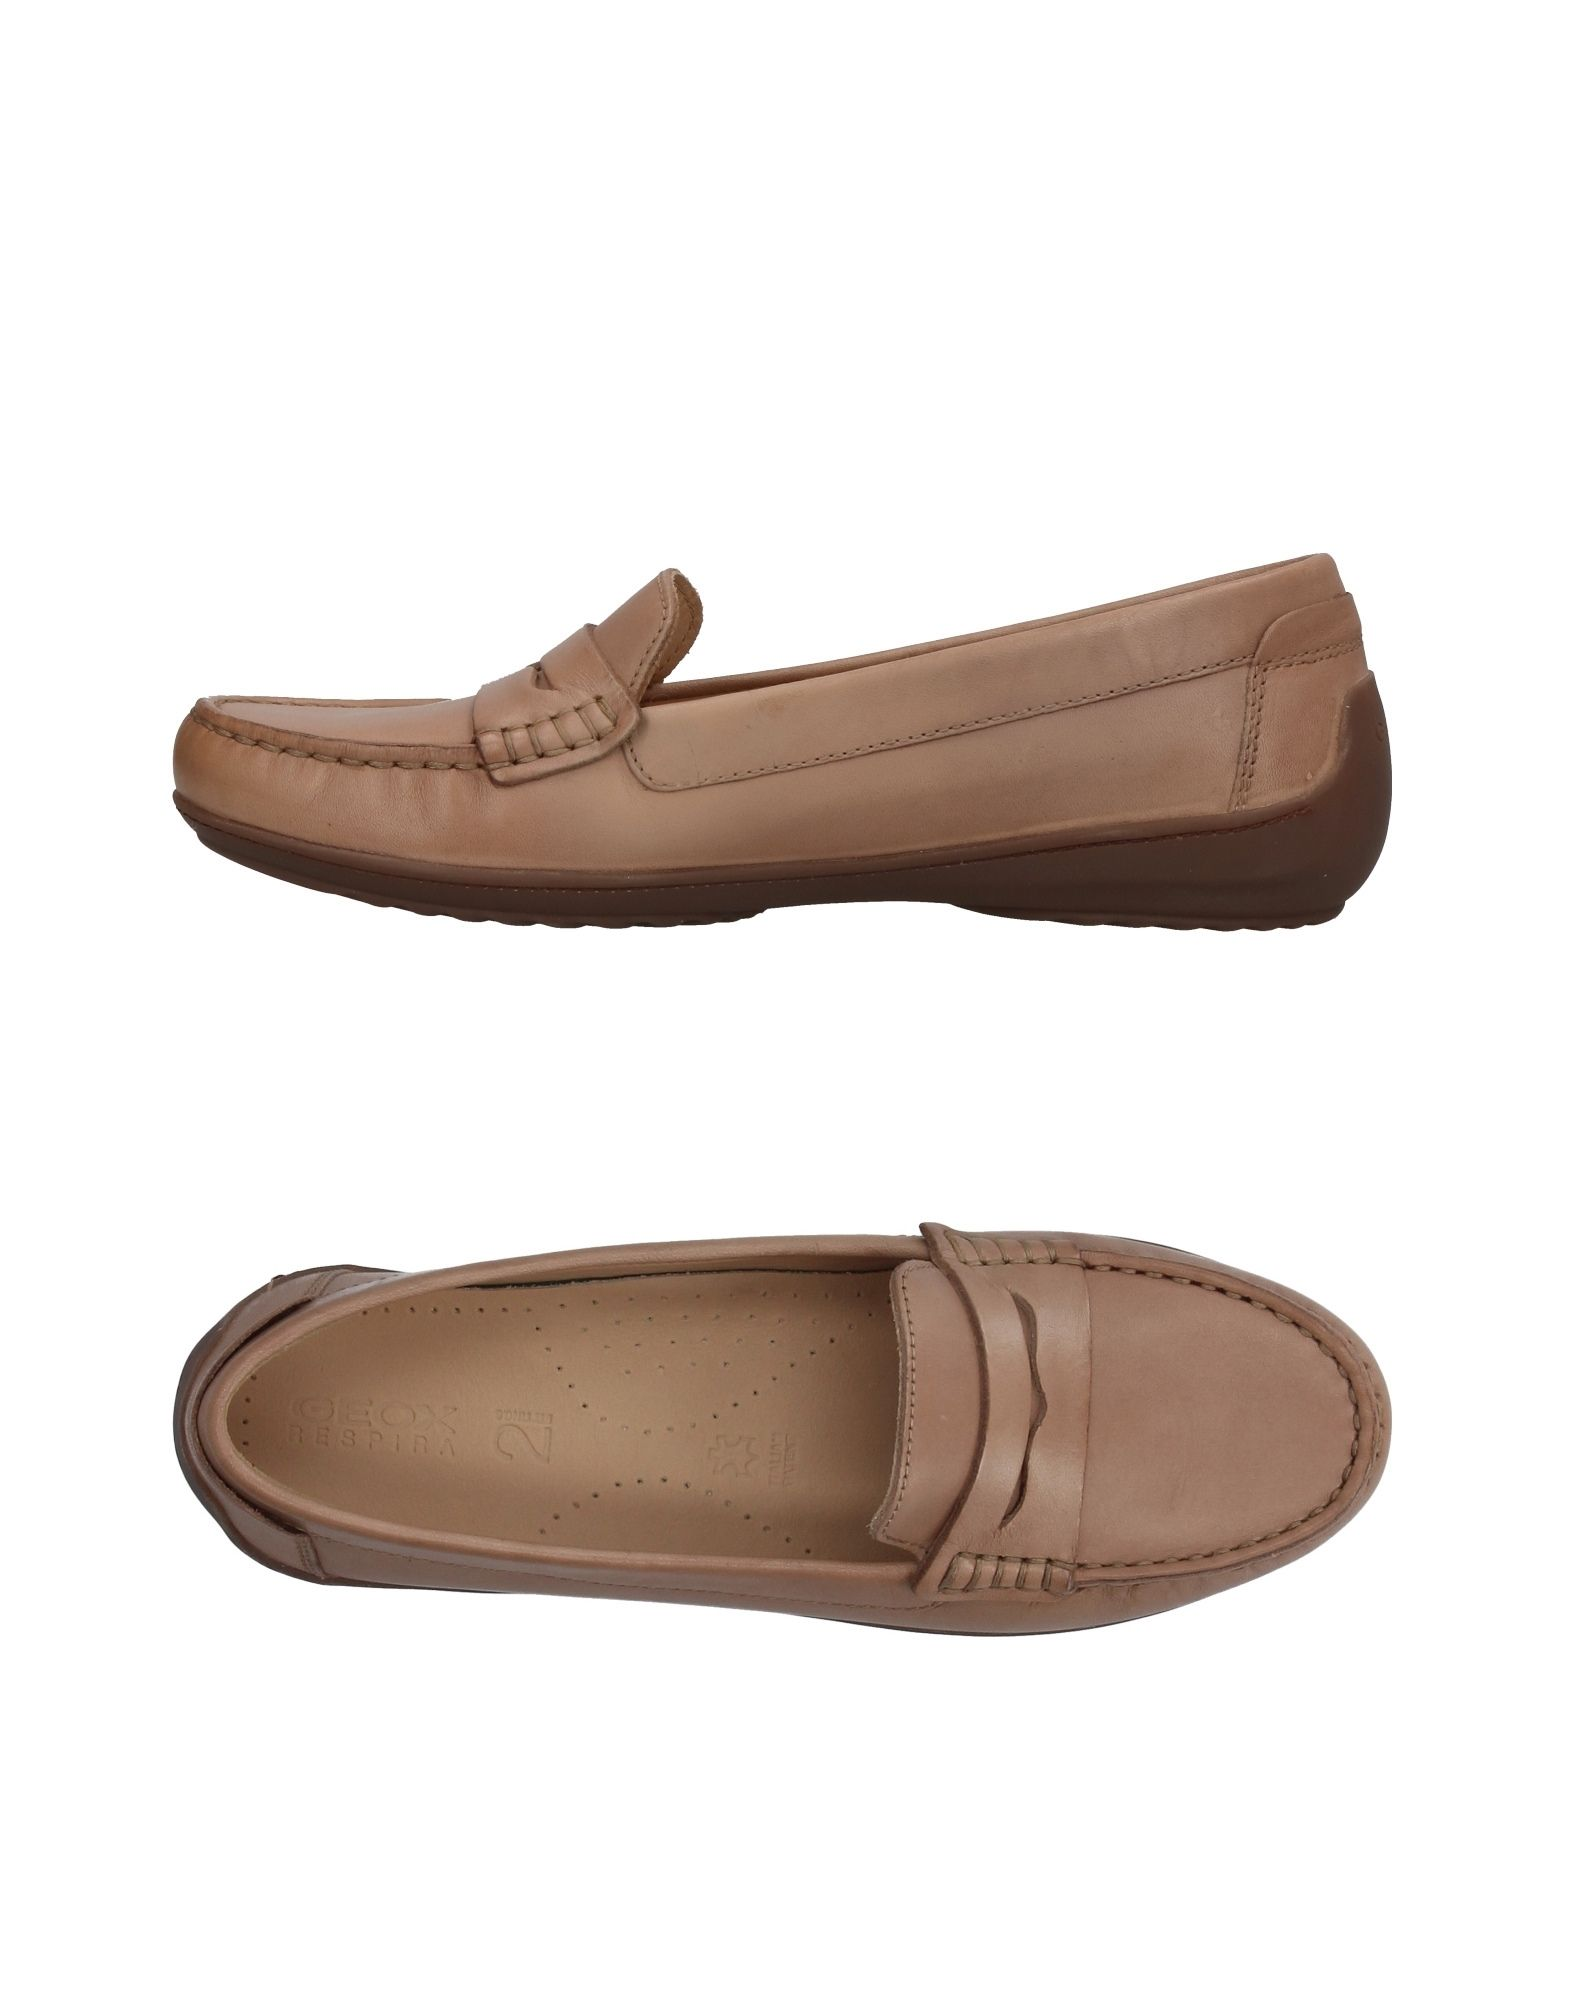 Geox Loafers - Women Geox Canada Loafers online on  Canada Geox - 11392220QB 8d4abc